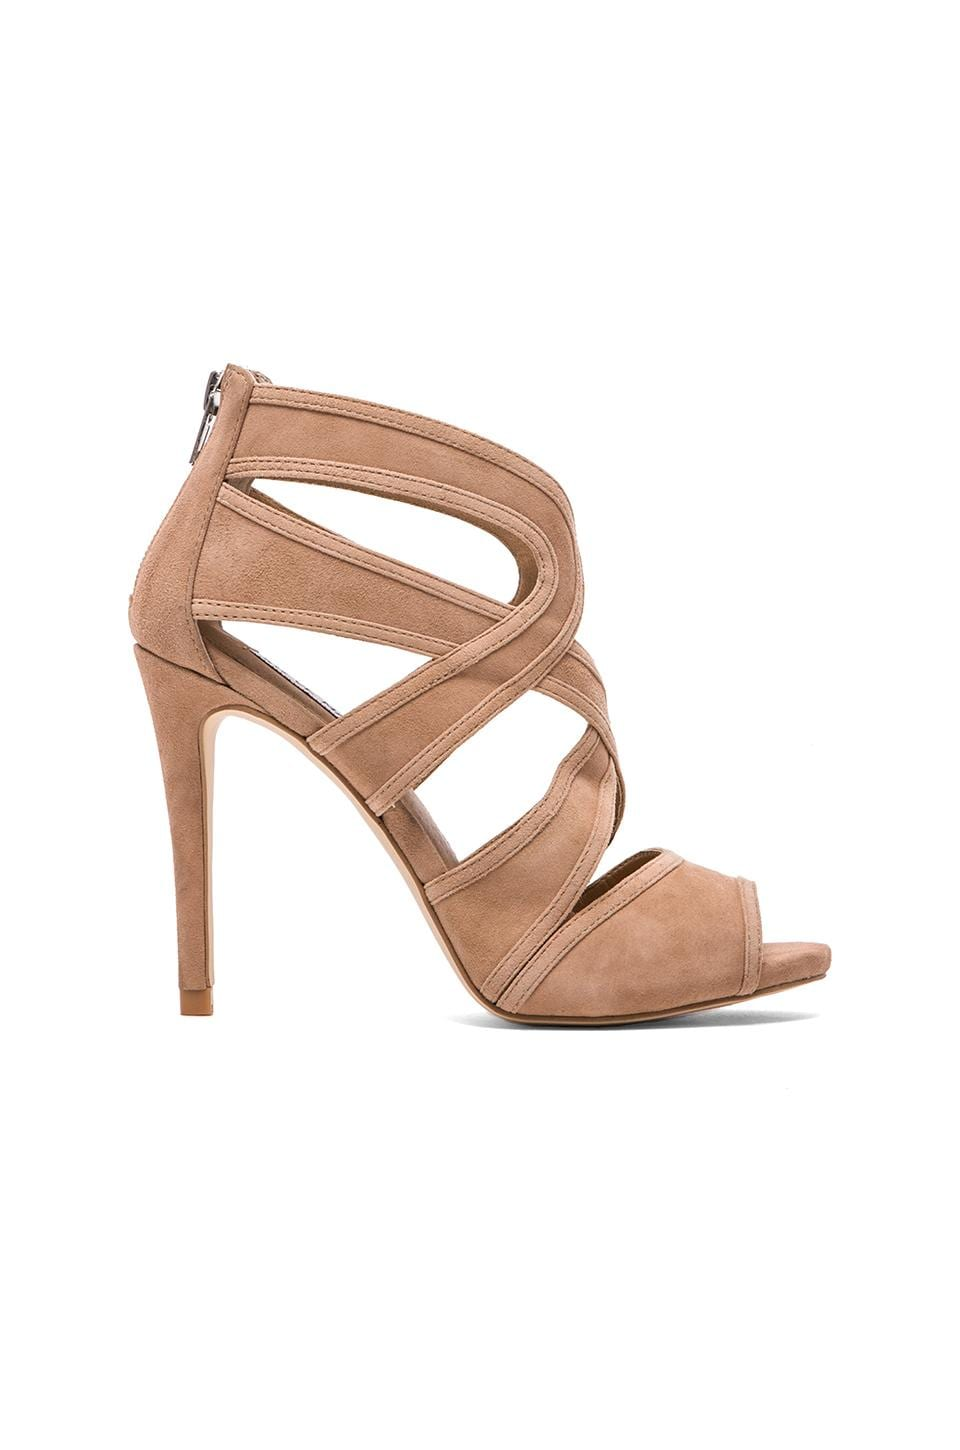 Steve Madden Immence Heel in Blush Suede